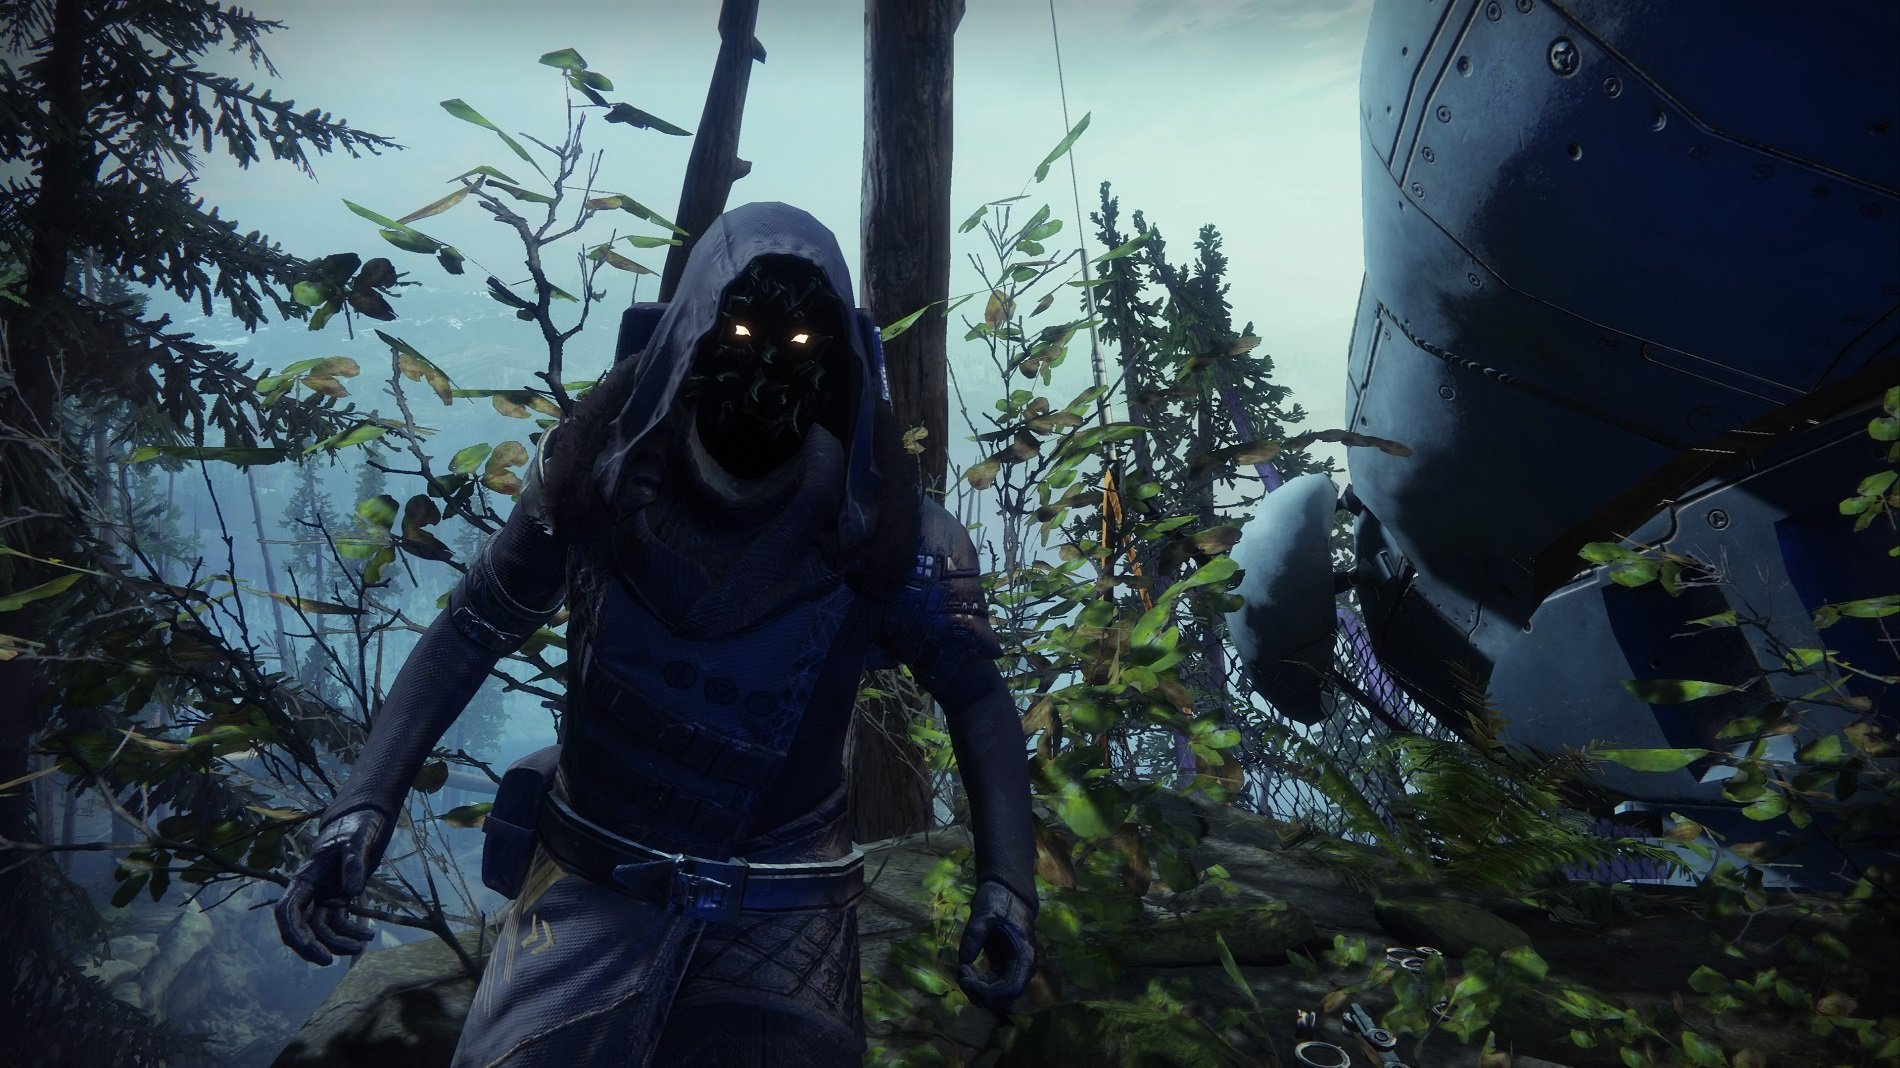 Where to find Xur in Destiny 2 - August 9, 2019